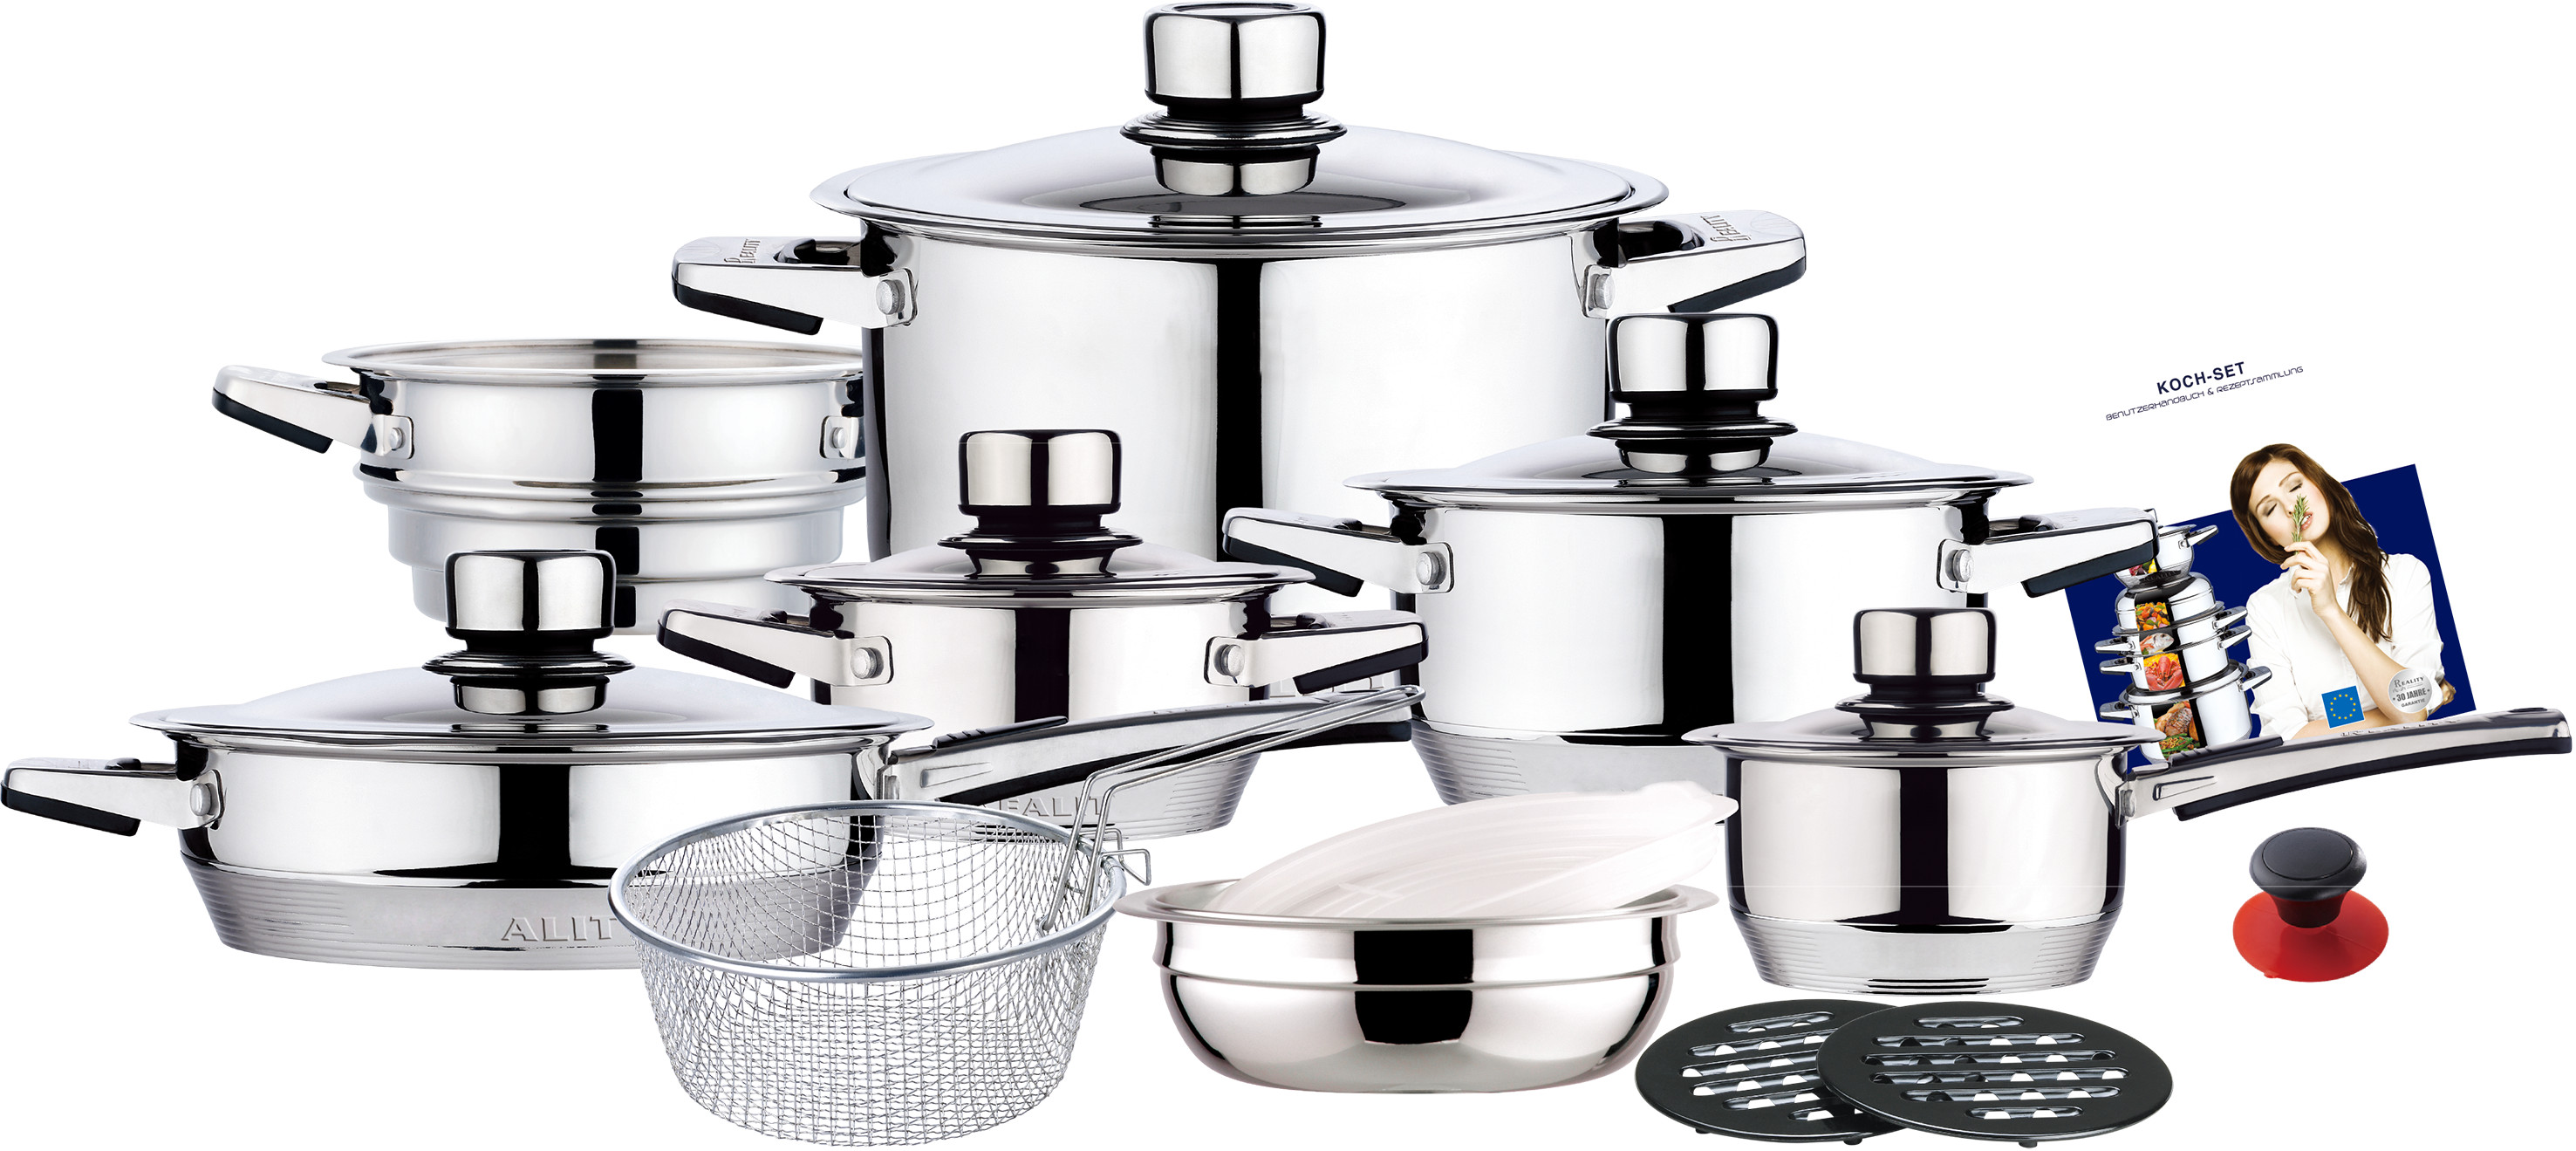 19pcs straight shape stainless steel cookware set with strong revit handle